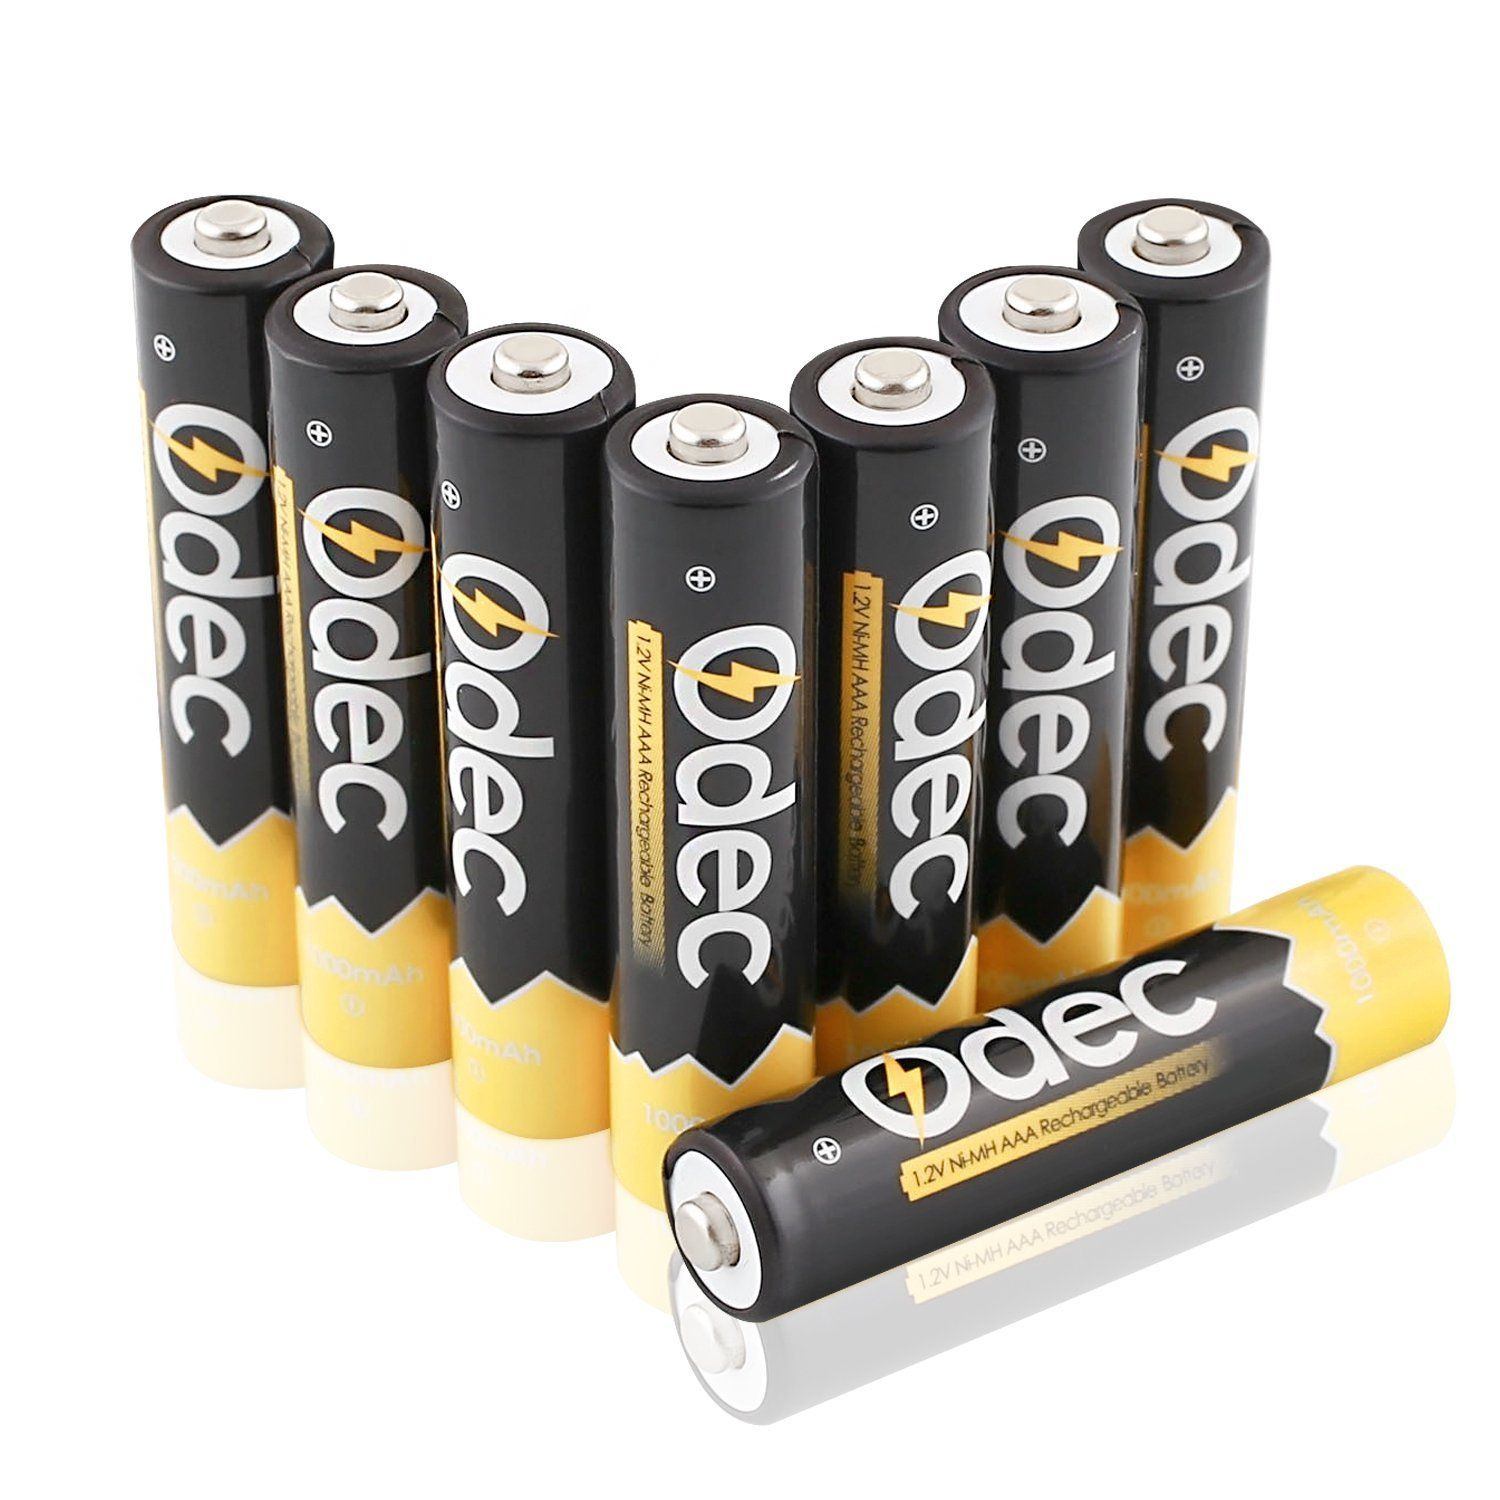 Hdx Alkaline Aa Battery 8 Pack 7151 8s The Home Depot Solar Panel Kits Alkaline Battery Outdoor Security Camera